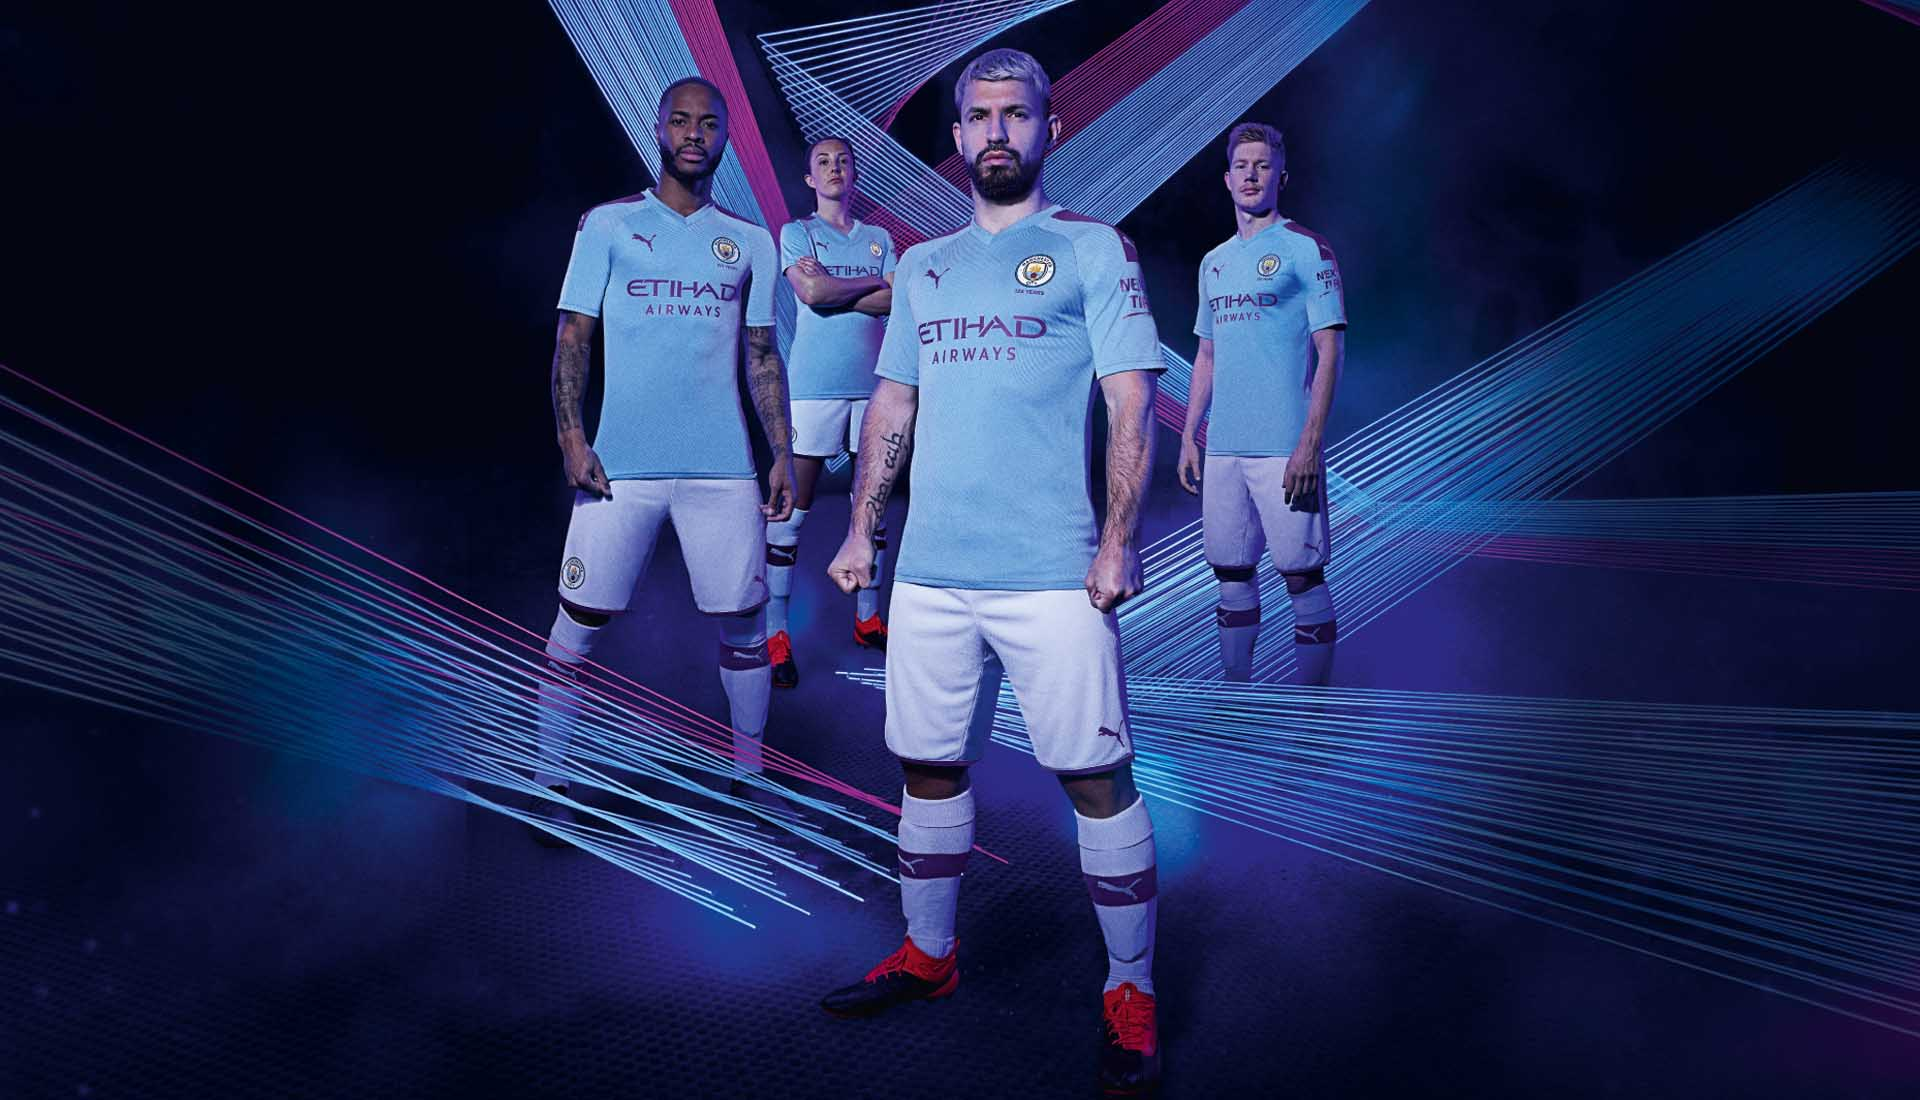 buy online 59044 0dd38 PUMA Launch Man City 2019/20 Home & Away Kits - SoccerBible